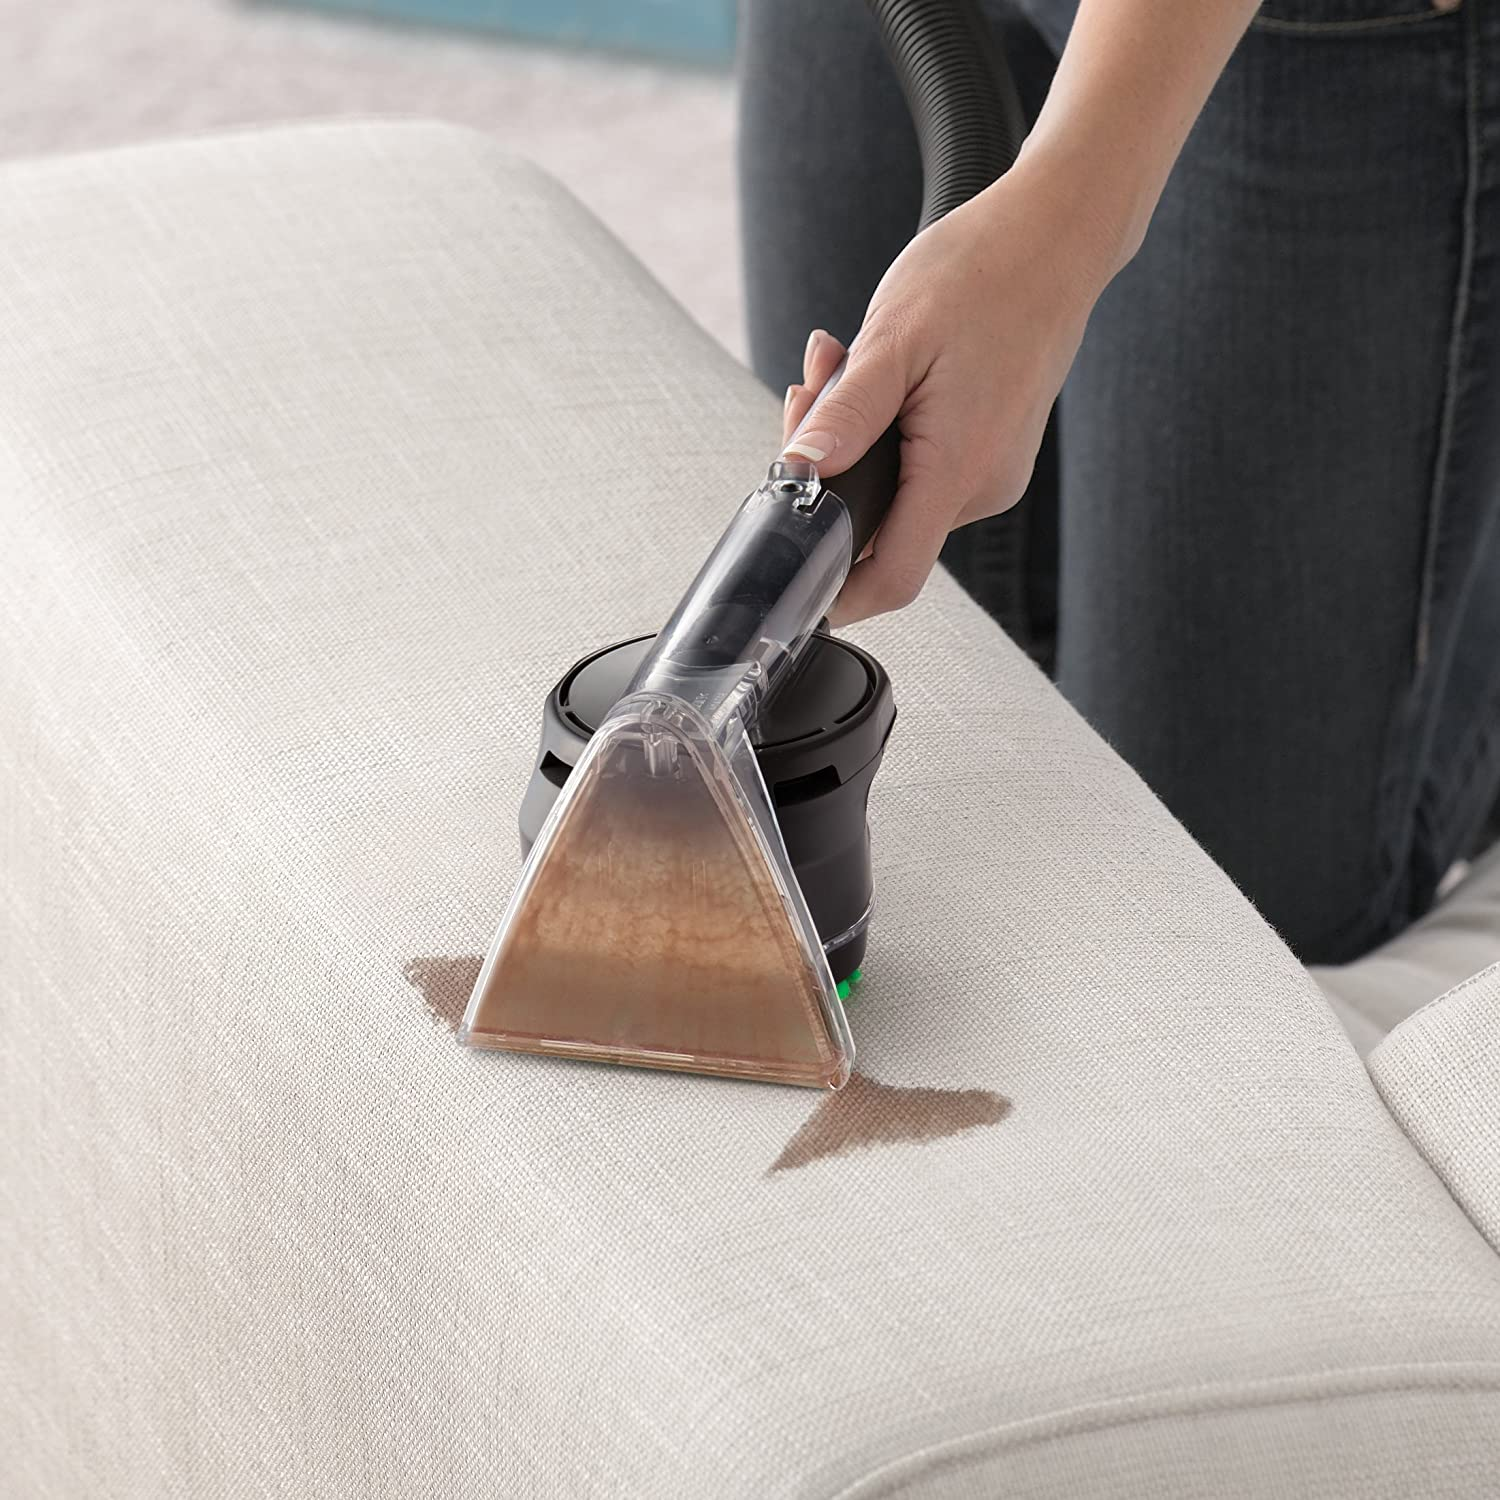 Carpet shampooer reviews